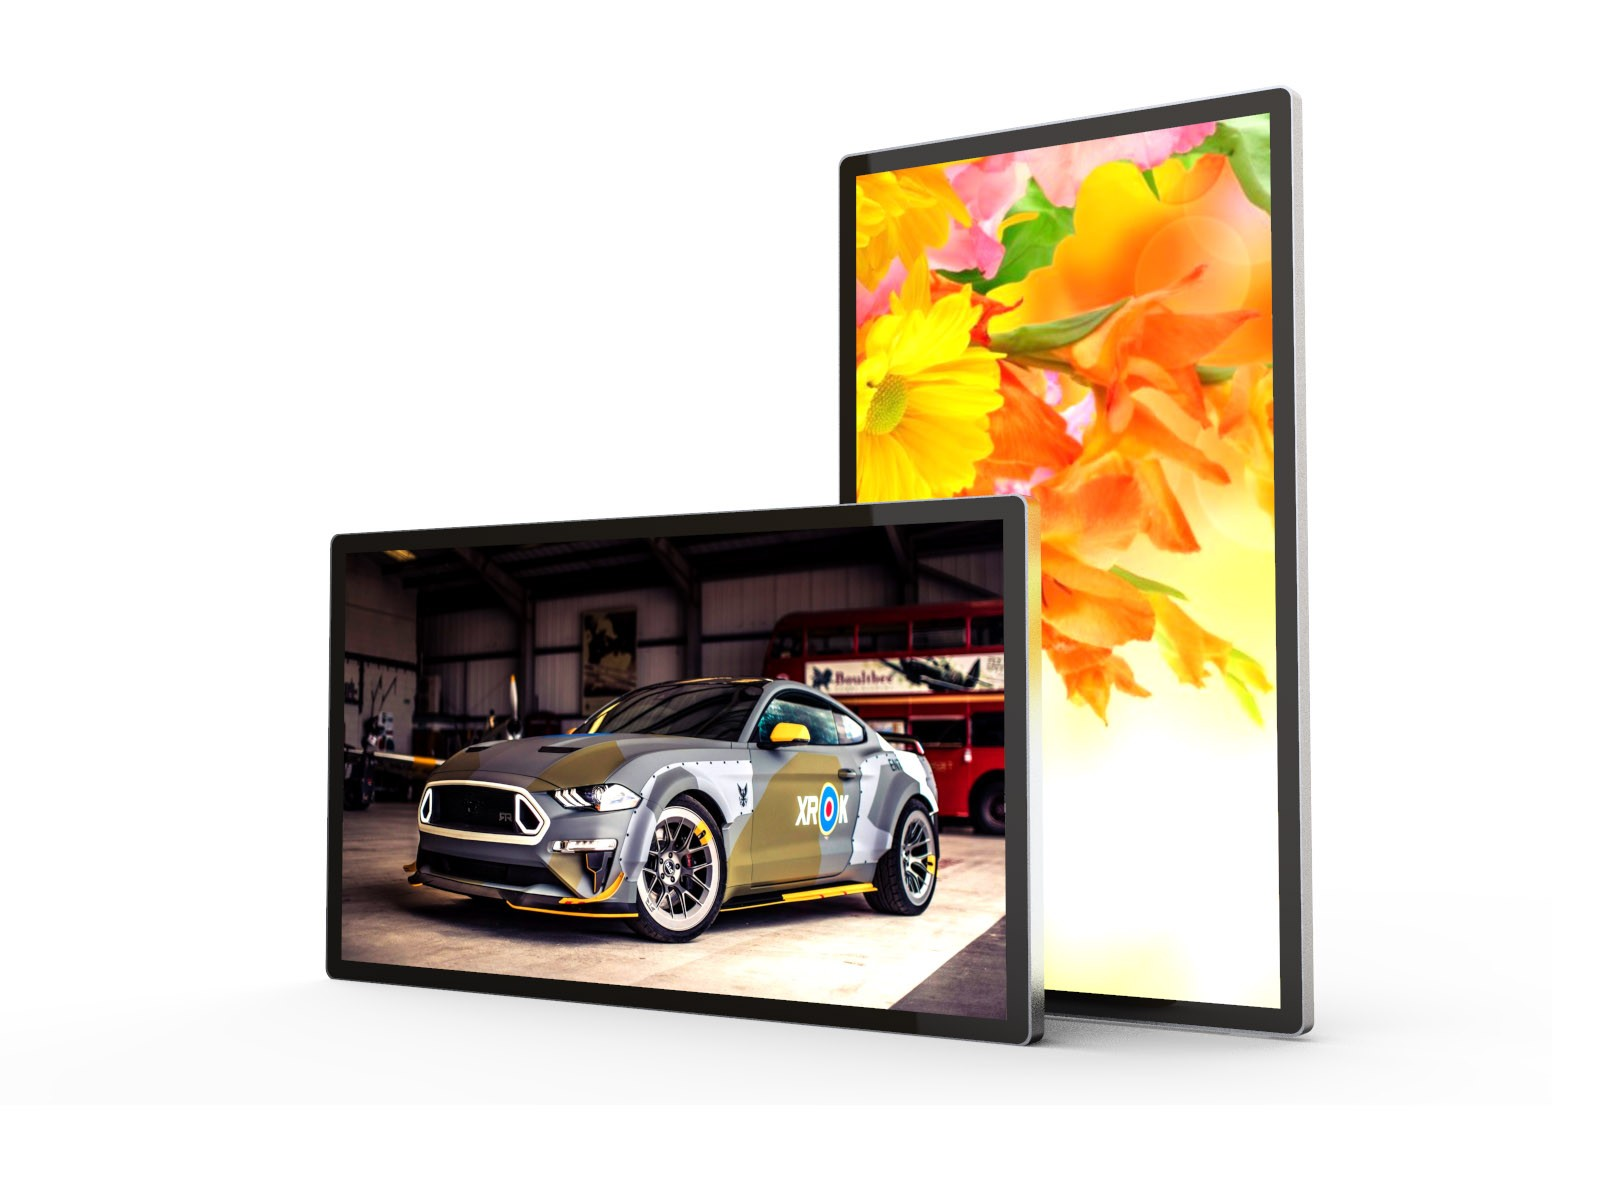 MG-GB500 Wall-mounted Digital Signage